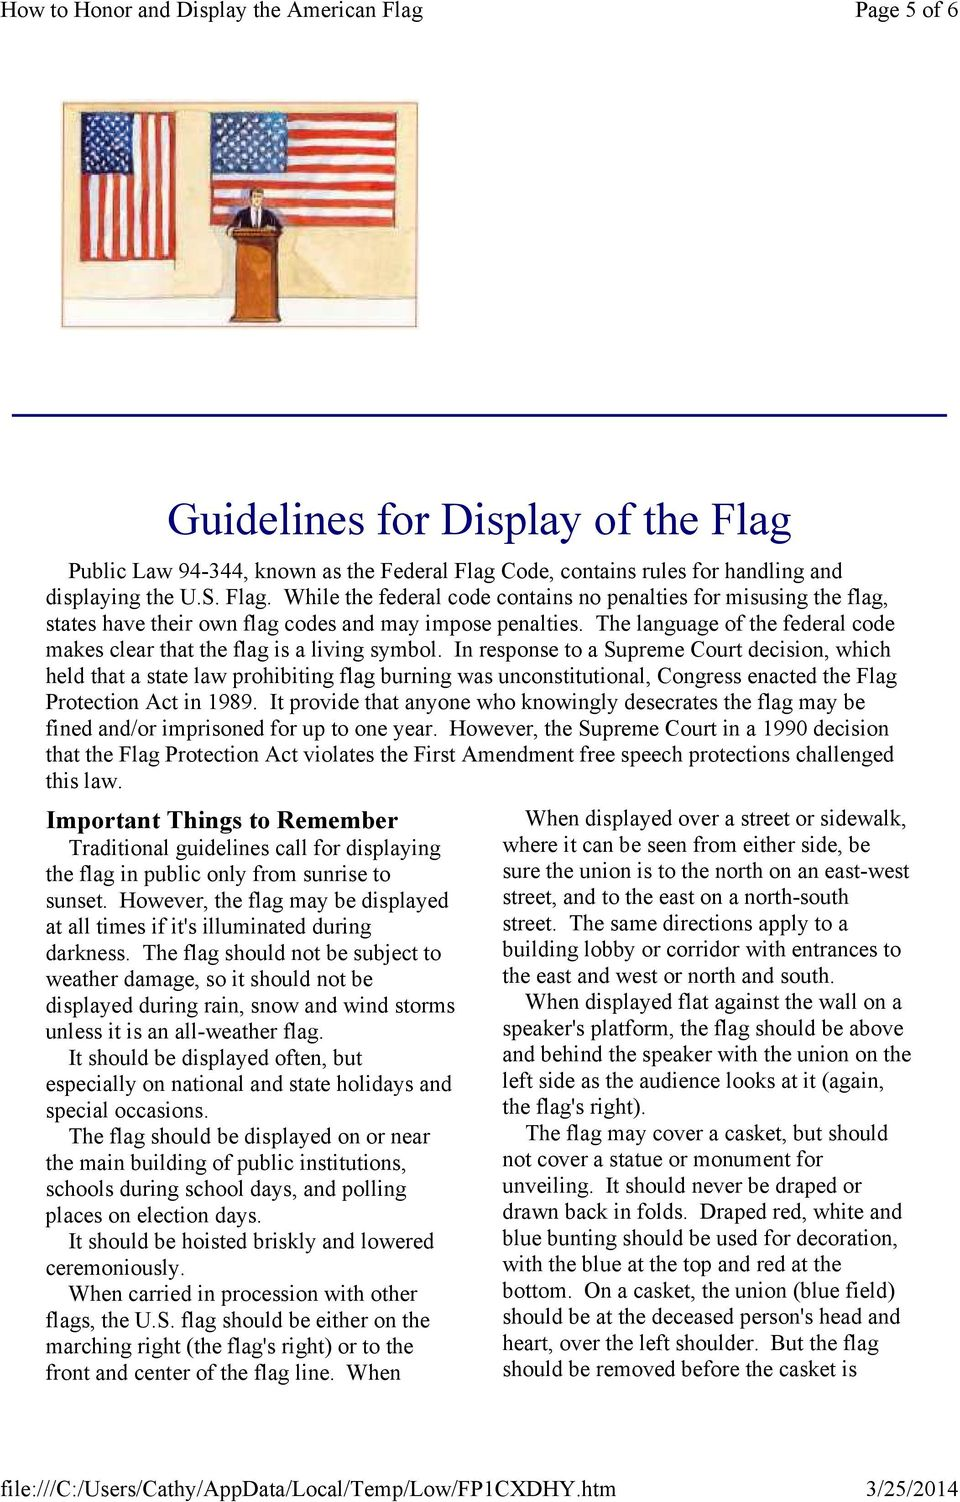 In response to a Supreme Court decision, which held that a state law prohibiting flag burning was unconstitutional, Congress enacted the Flag Protection Act in 1989.